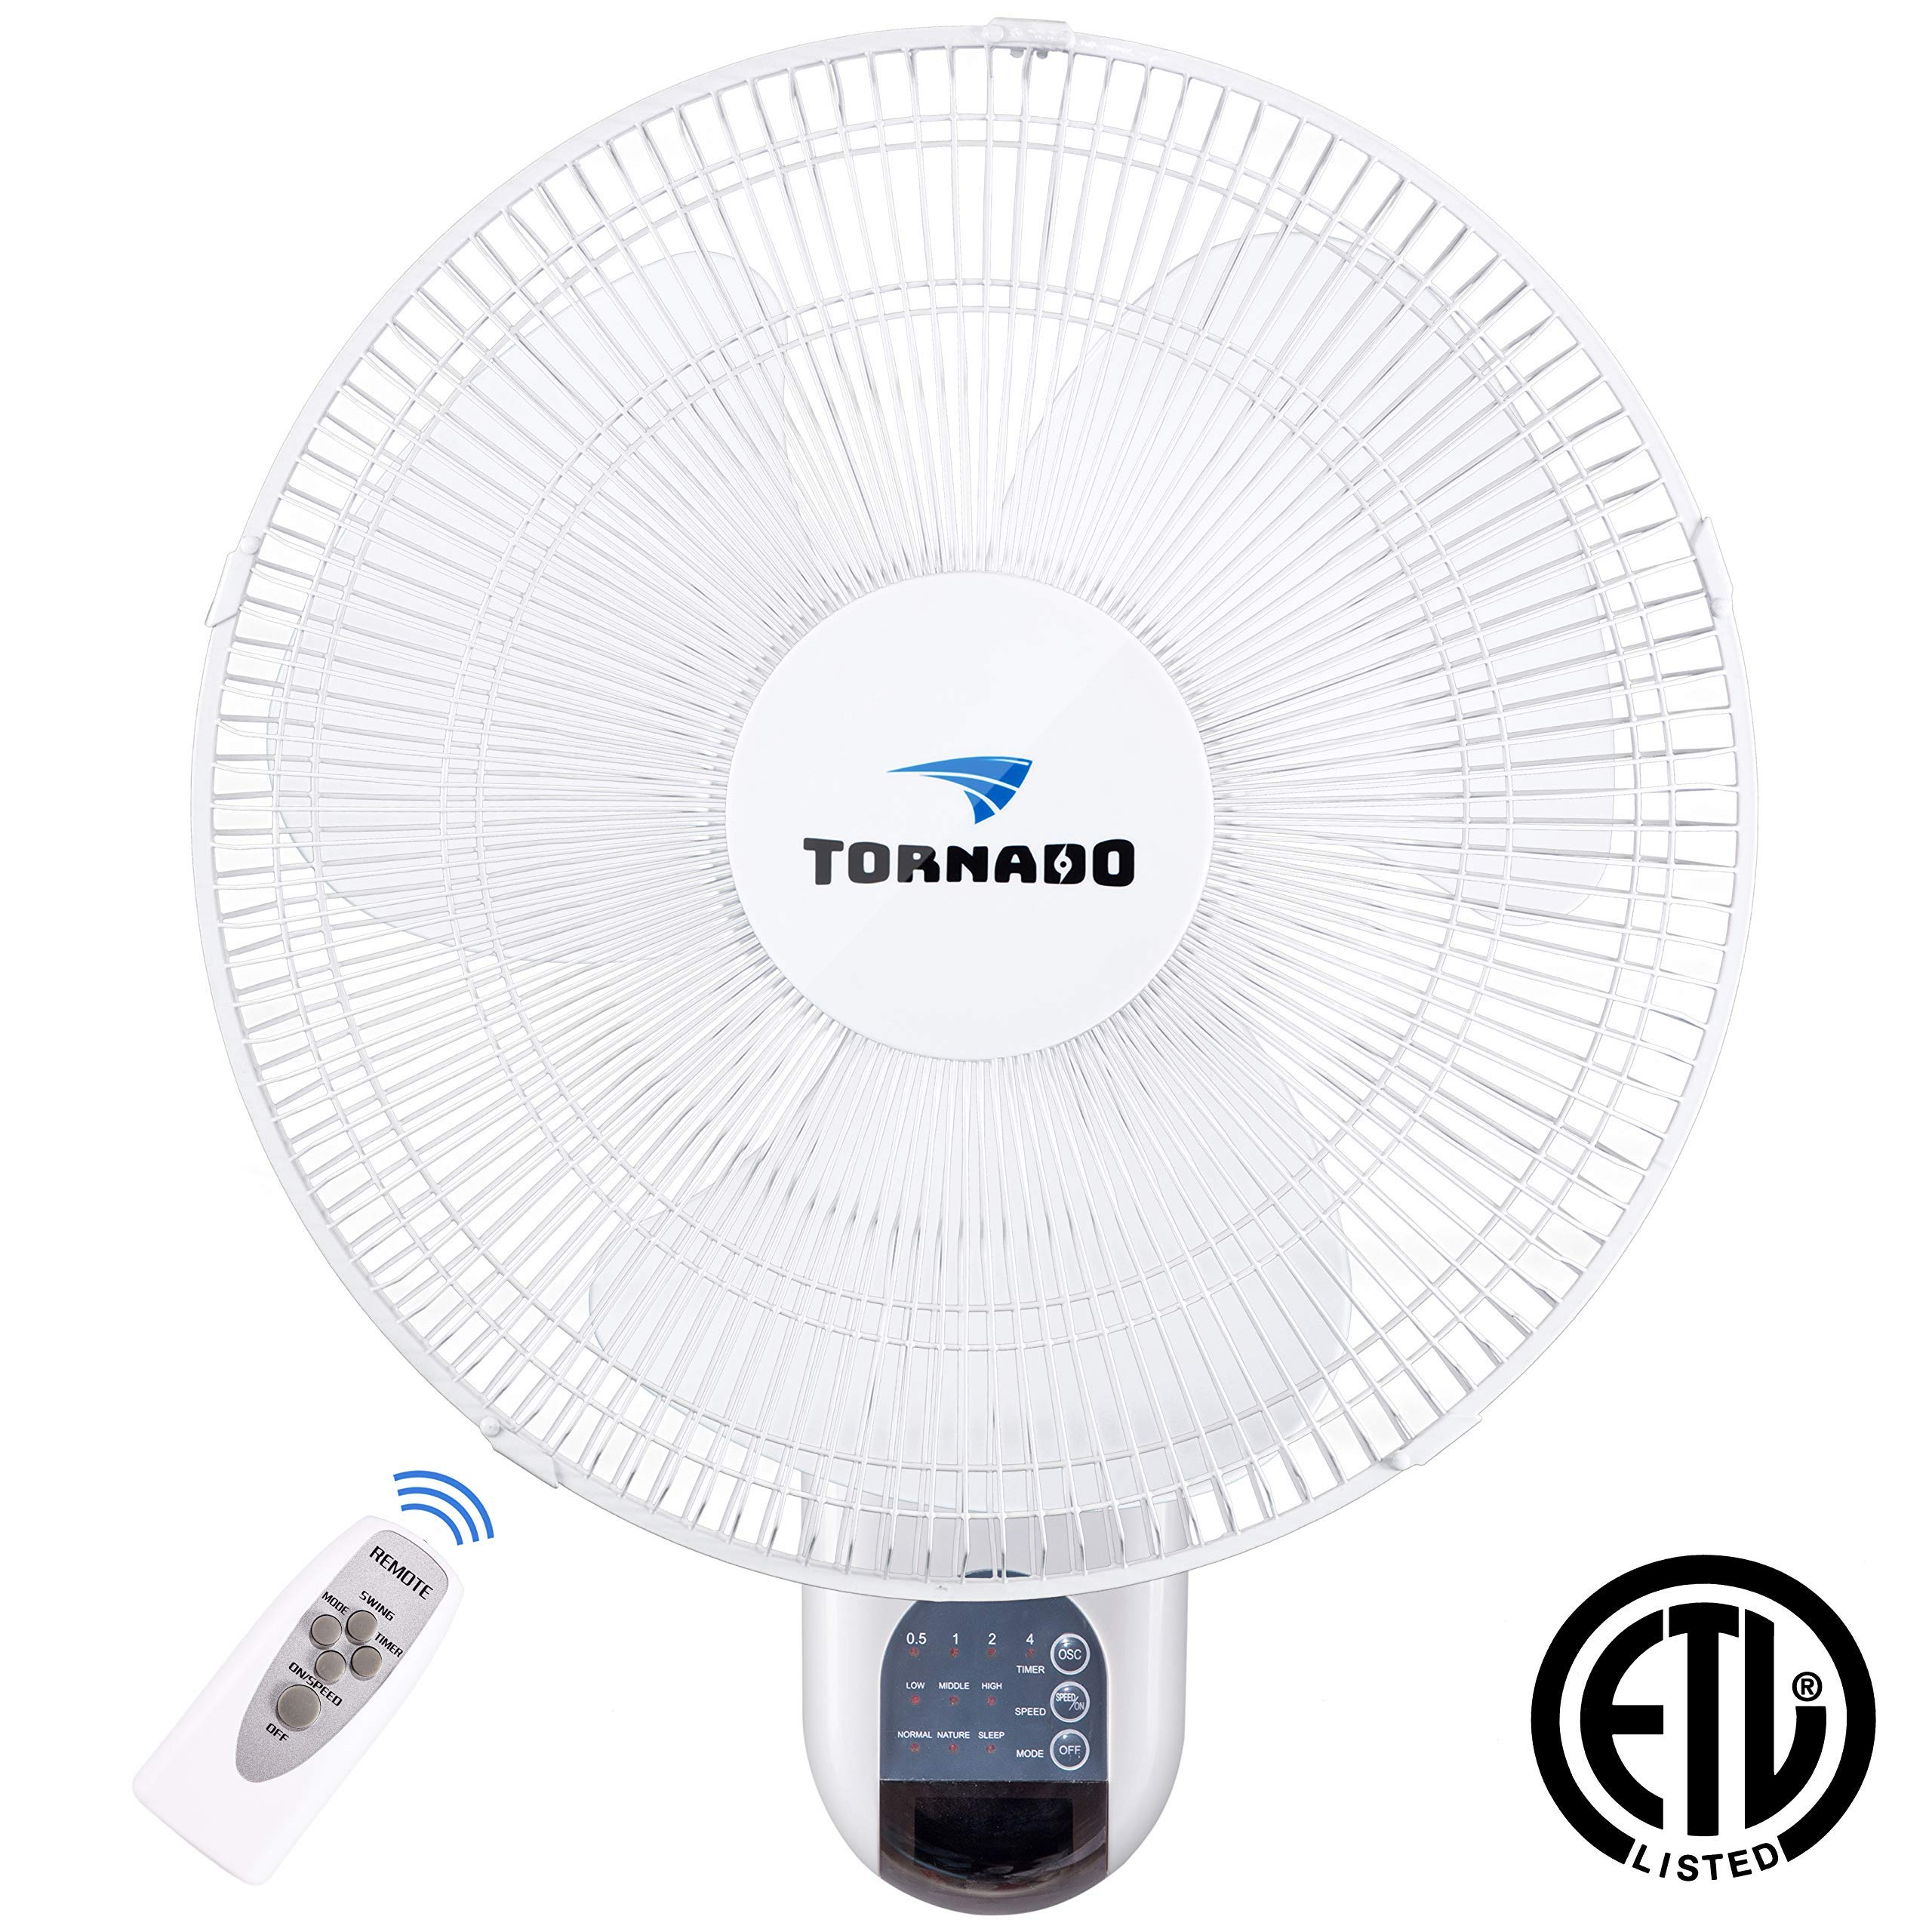 Tornado 16 Inch Digital Wall Mount Fan - Remote Control Included - 3 Speed Settings - 3 Oscillating Settings - 65 Inches Power Cord - ETL Safety Listed (Renewed) by Tornado